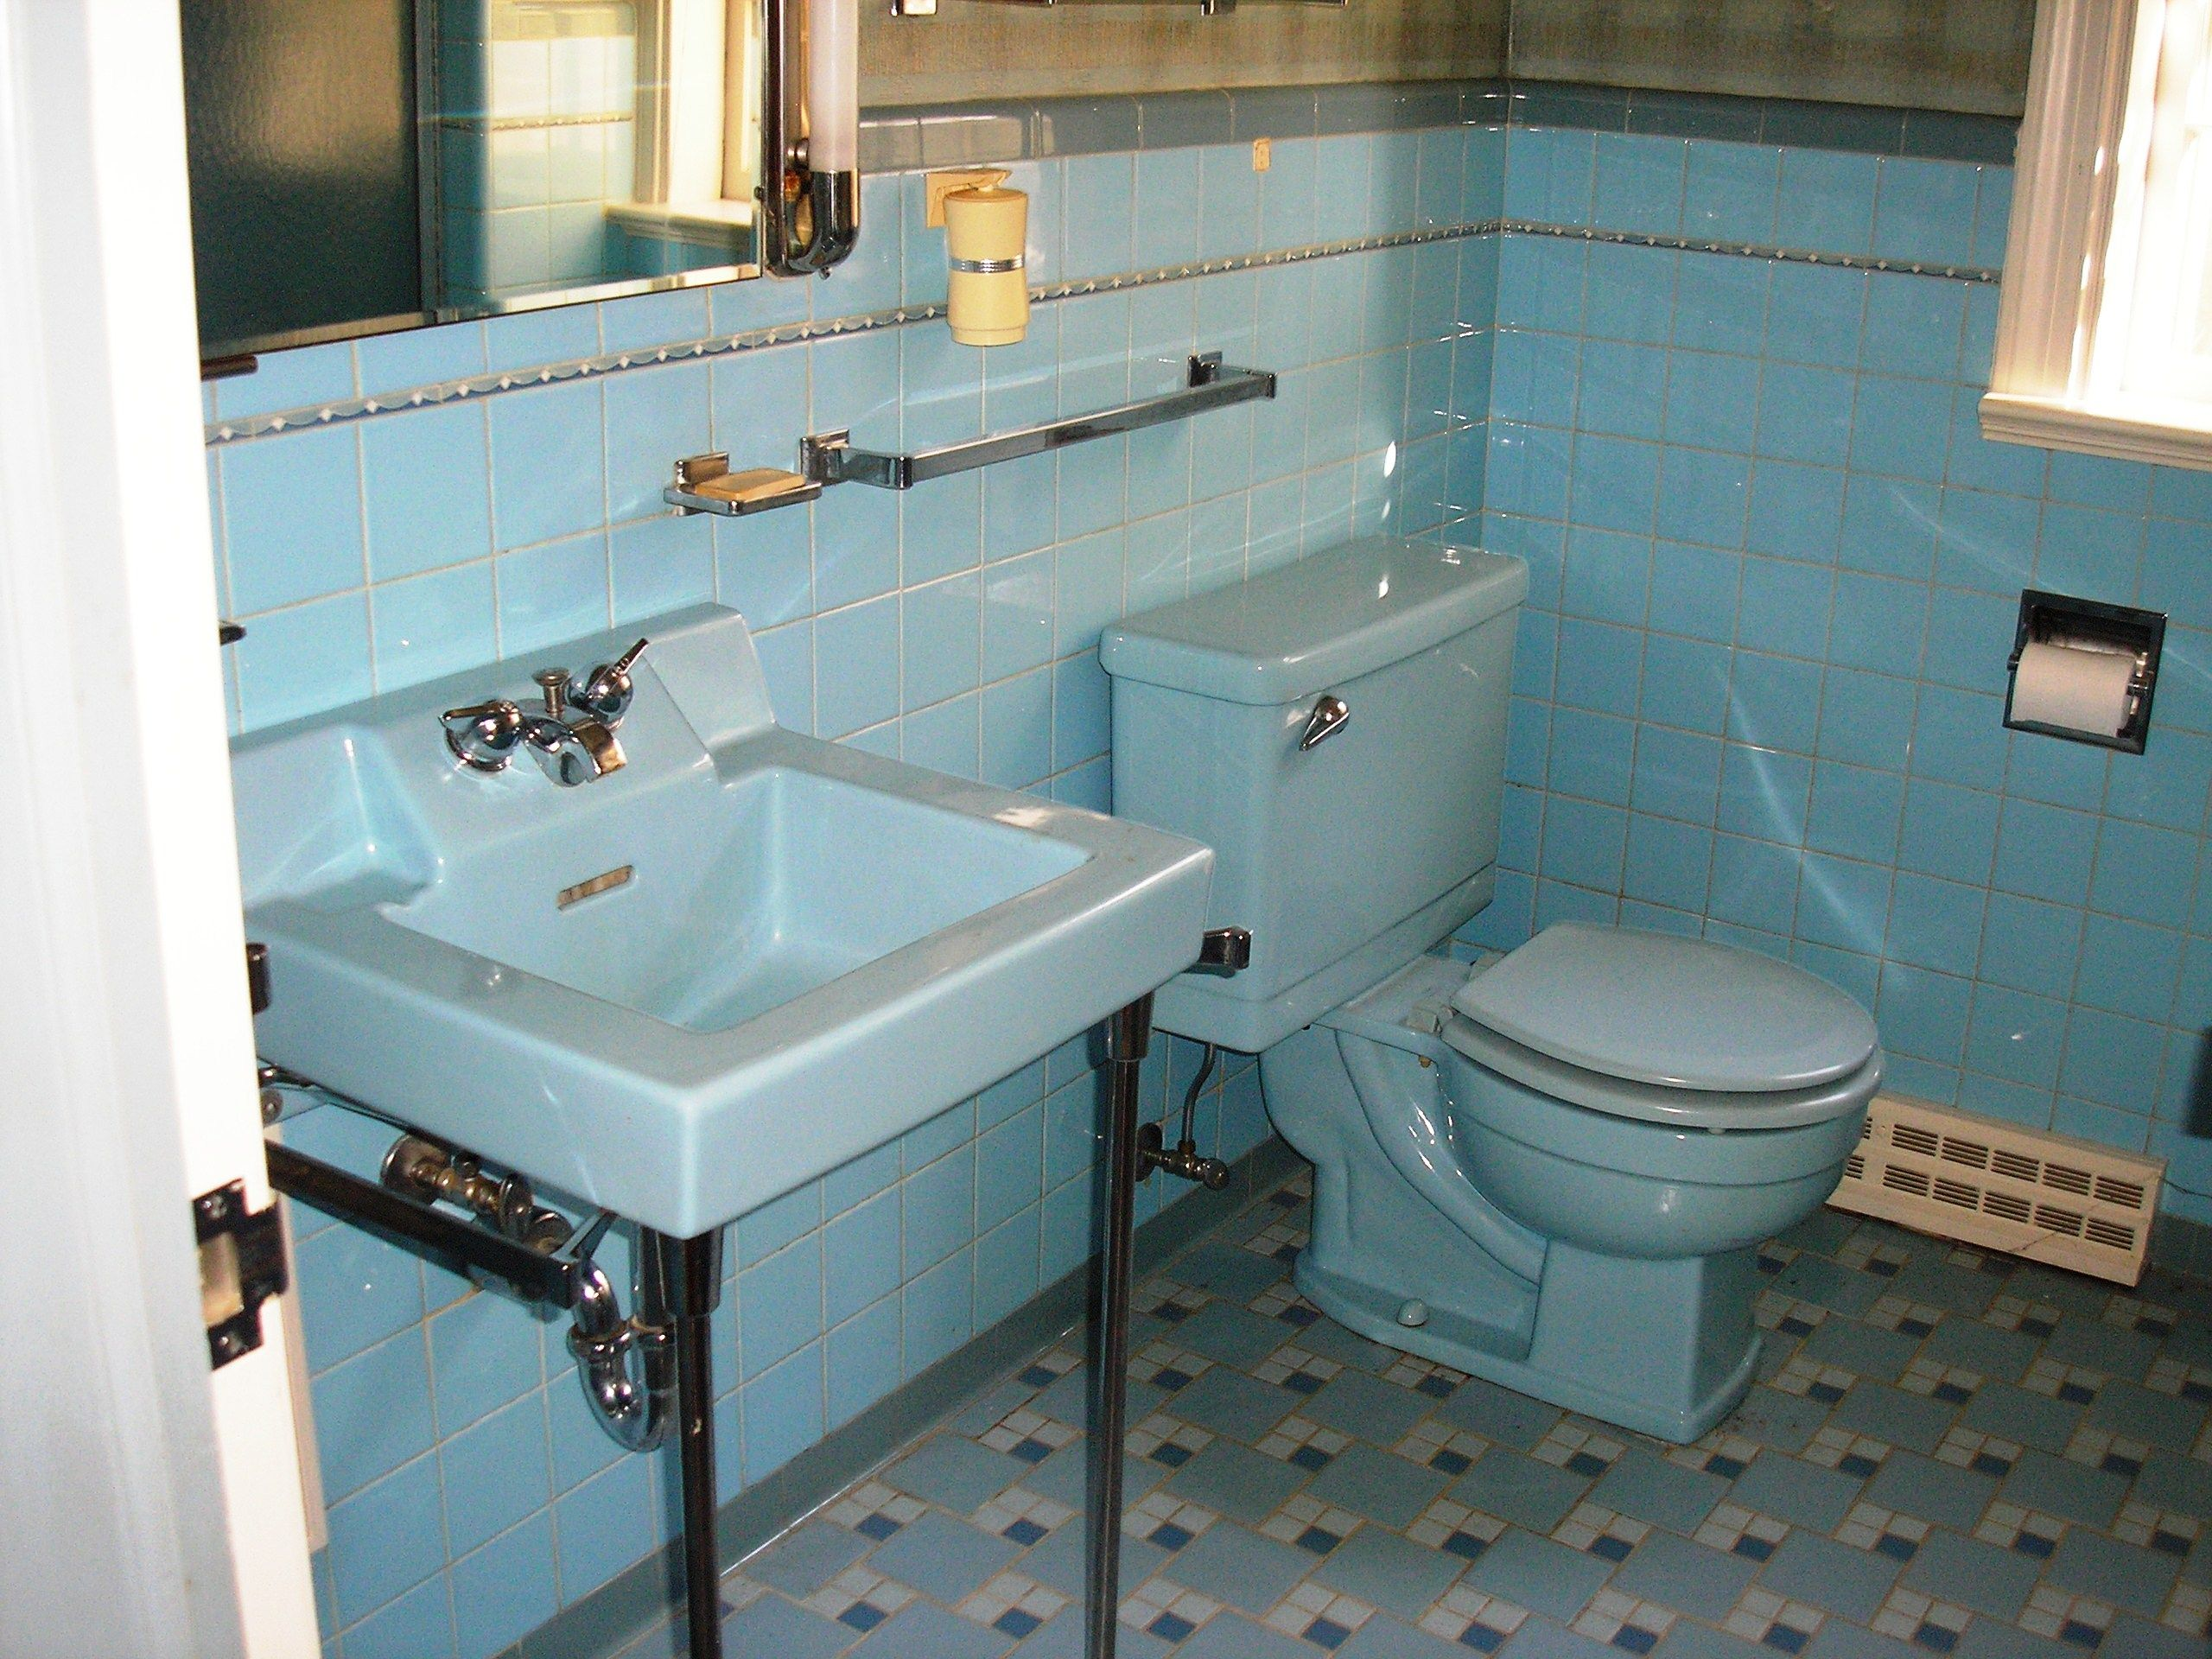 Best Save The Blue And Green Bathrooms Images On Pinterest - Bike bathroom sink ideal modern bathroom design vintage style